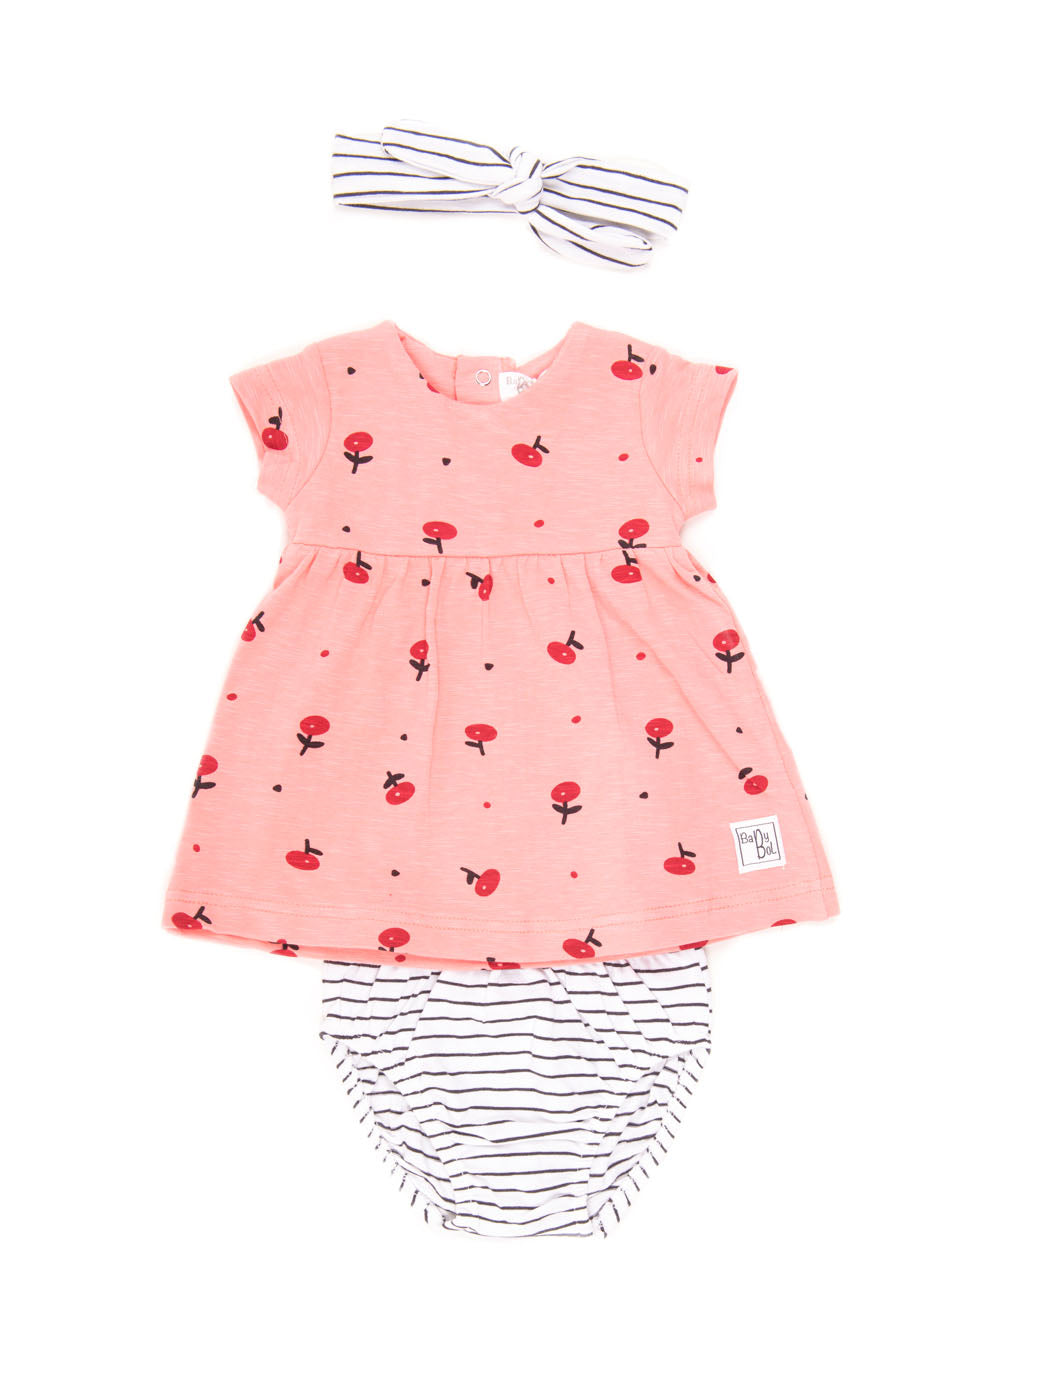 Baby Outfit 3pcs Art.11859